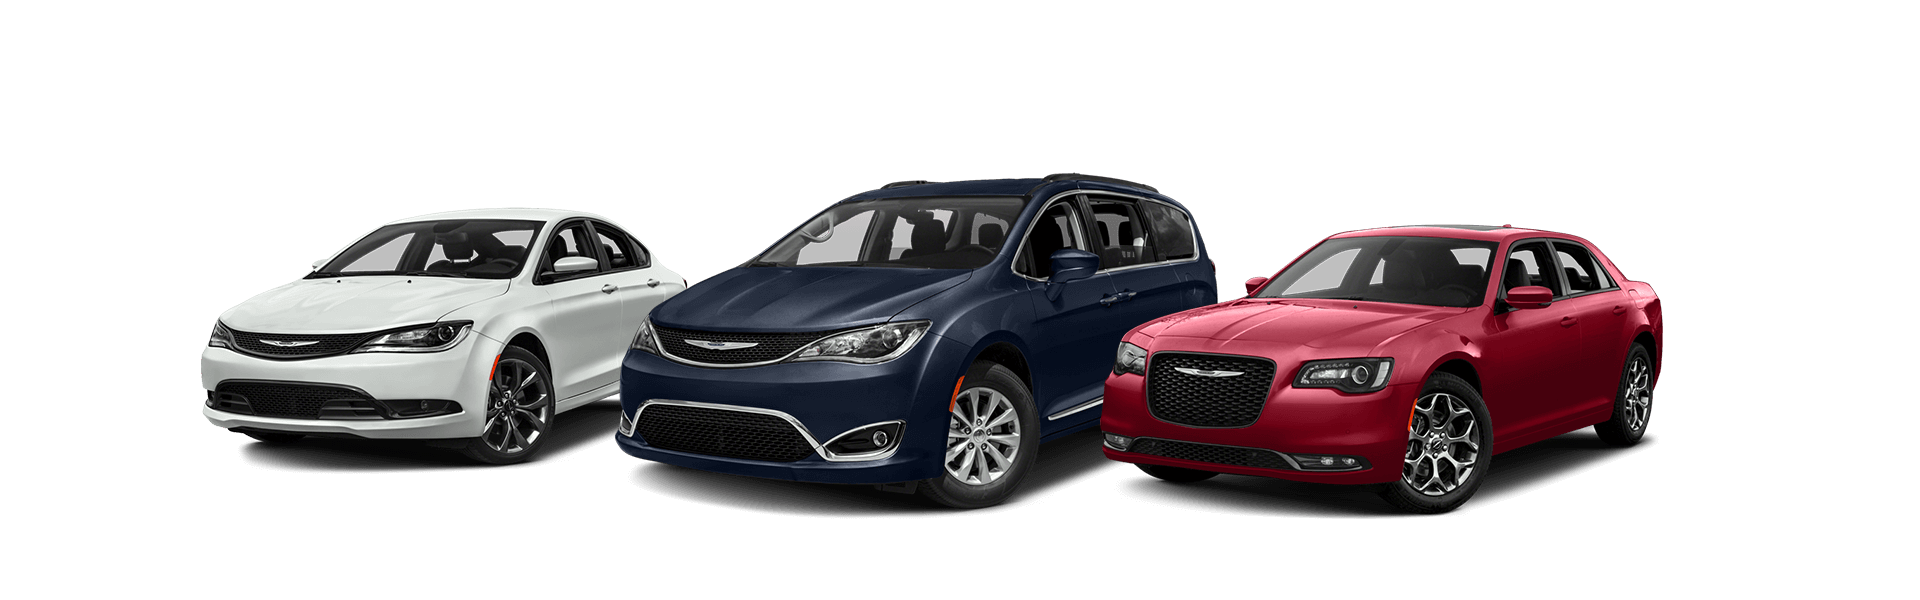 Sudbury Car Dealerships >> Get Approved Car Loans In Sudbury North Bay And Northern